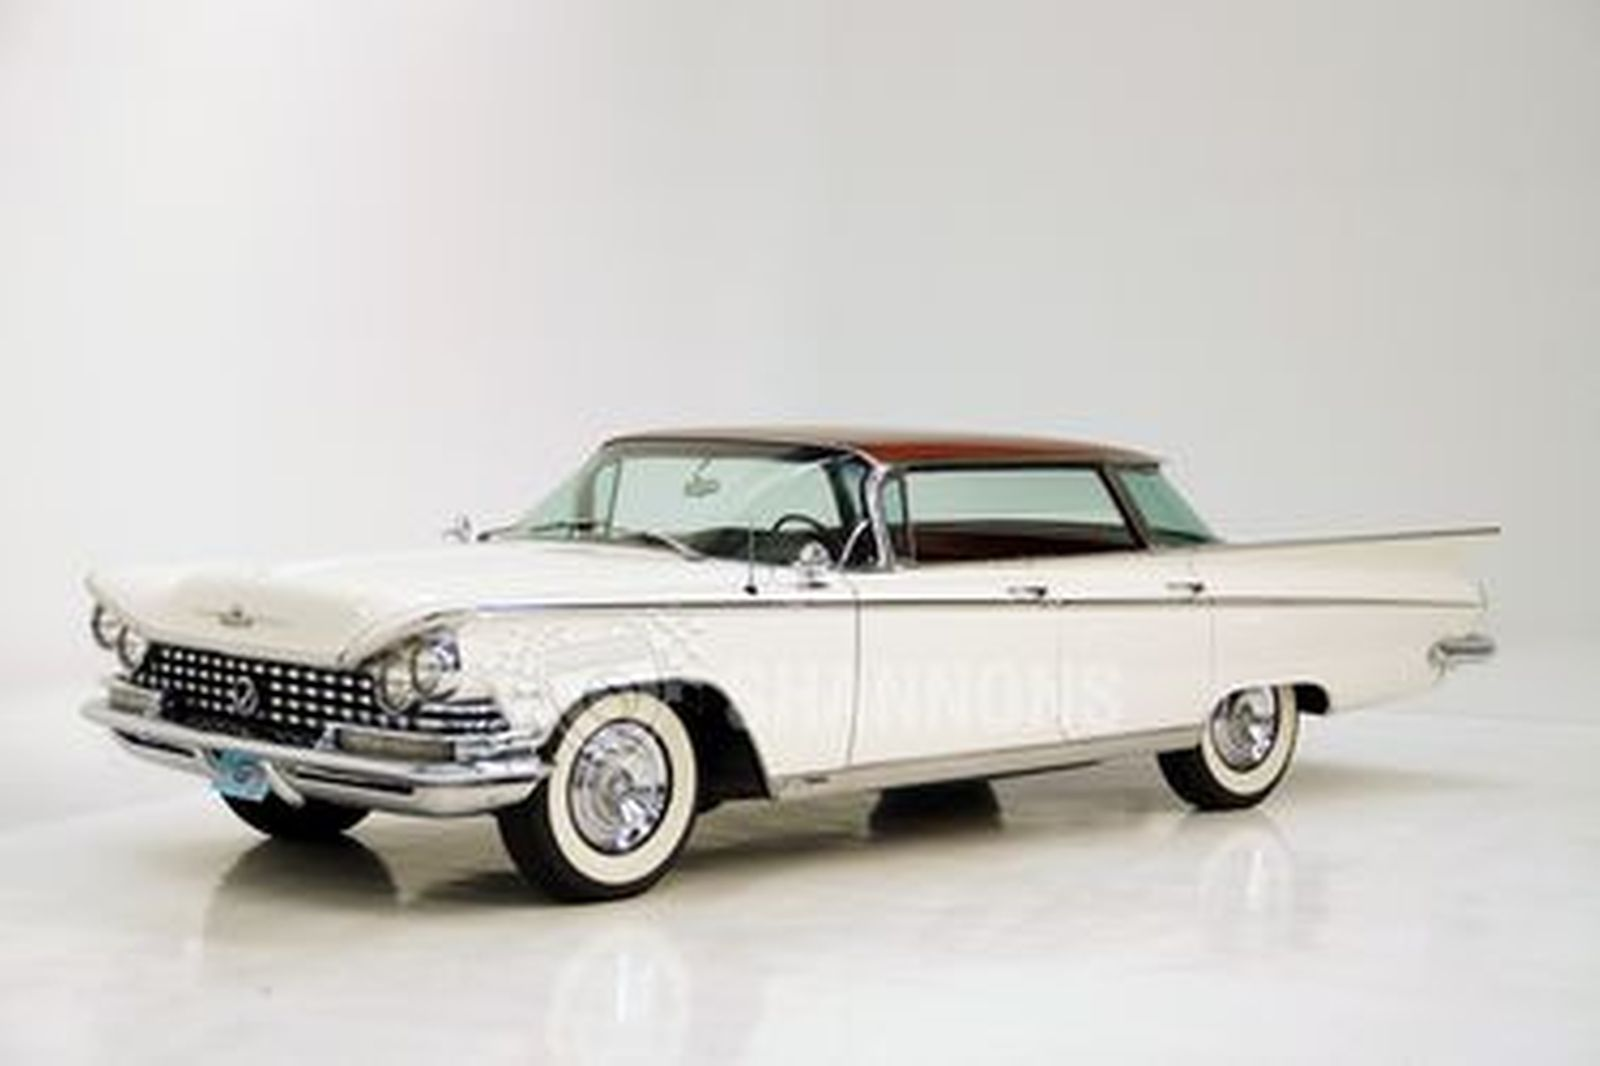 Buick Invicta 4 Door 'Flat Top' Pillarless Sedan (LHD)